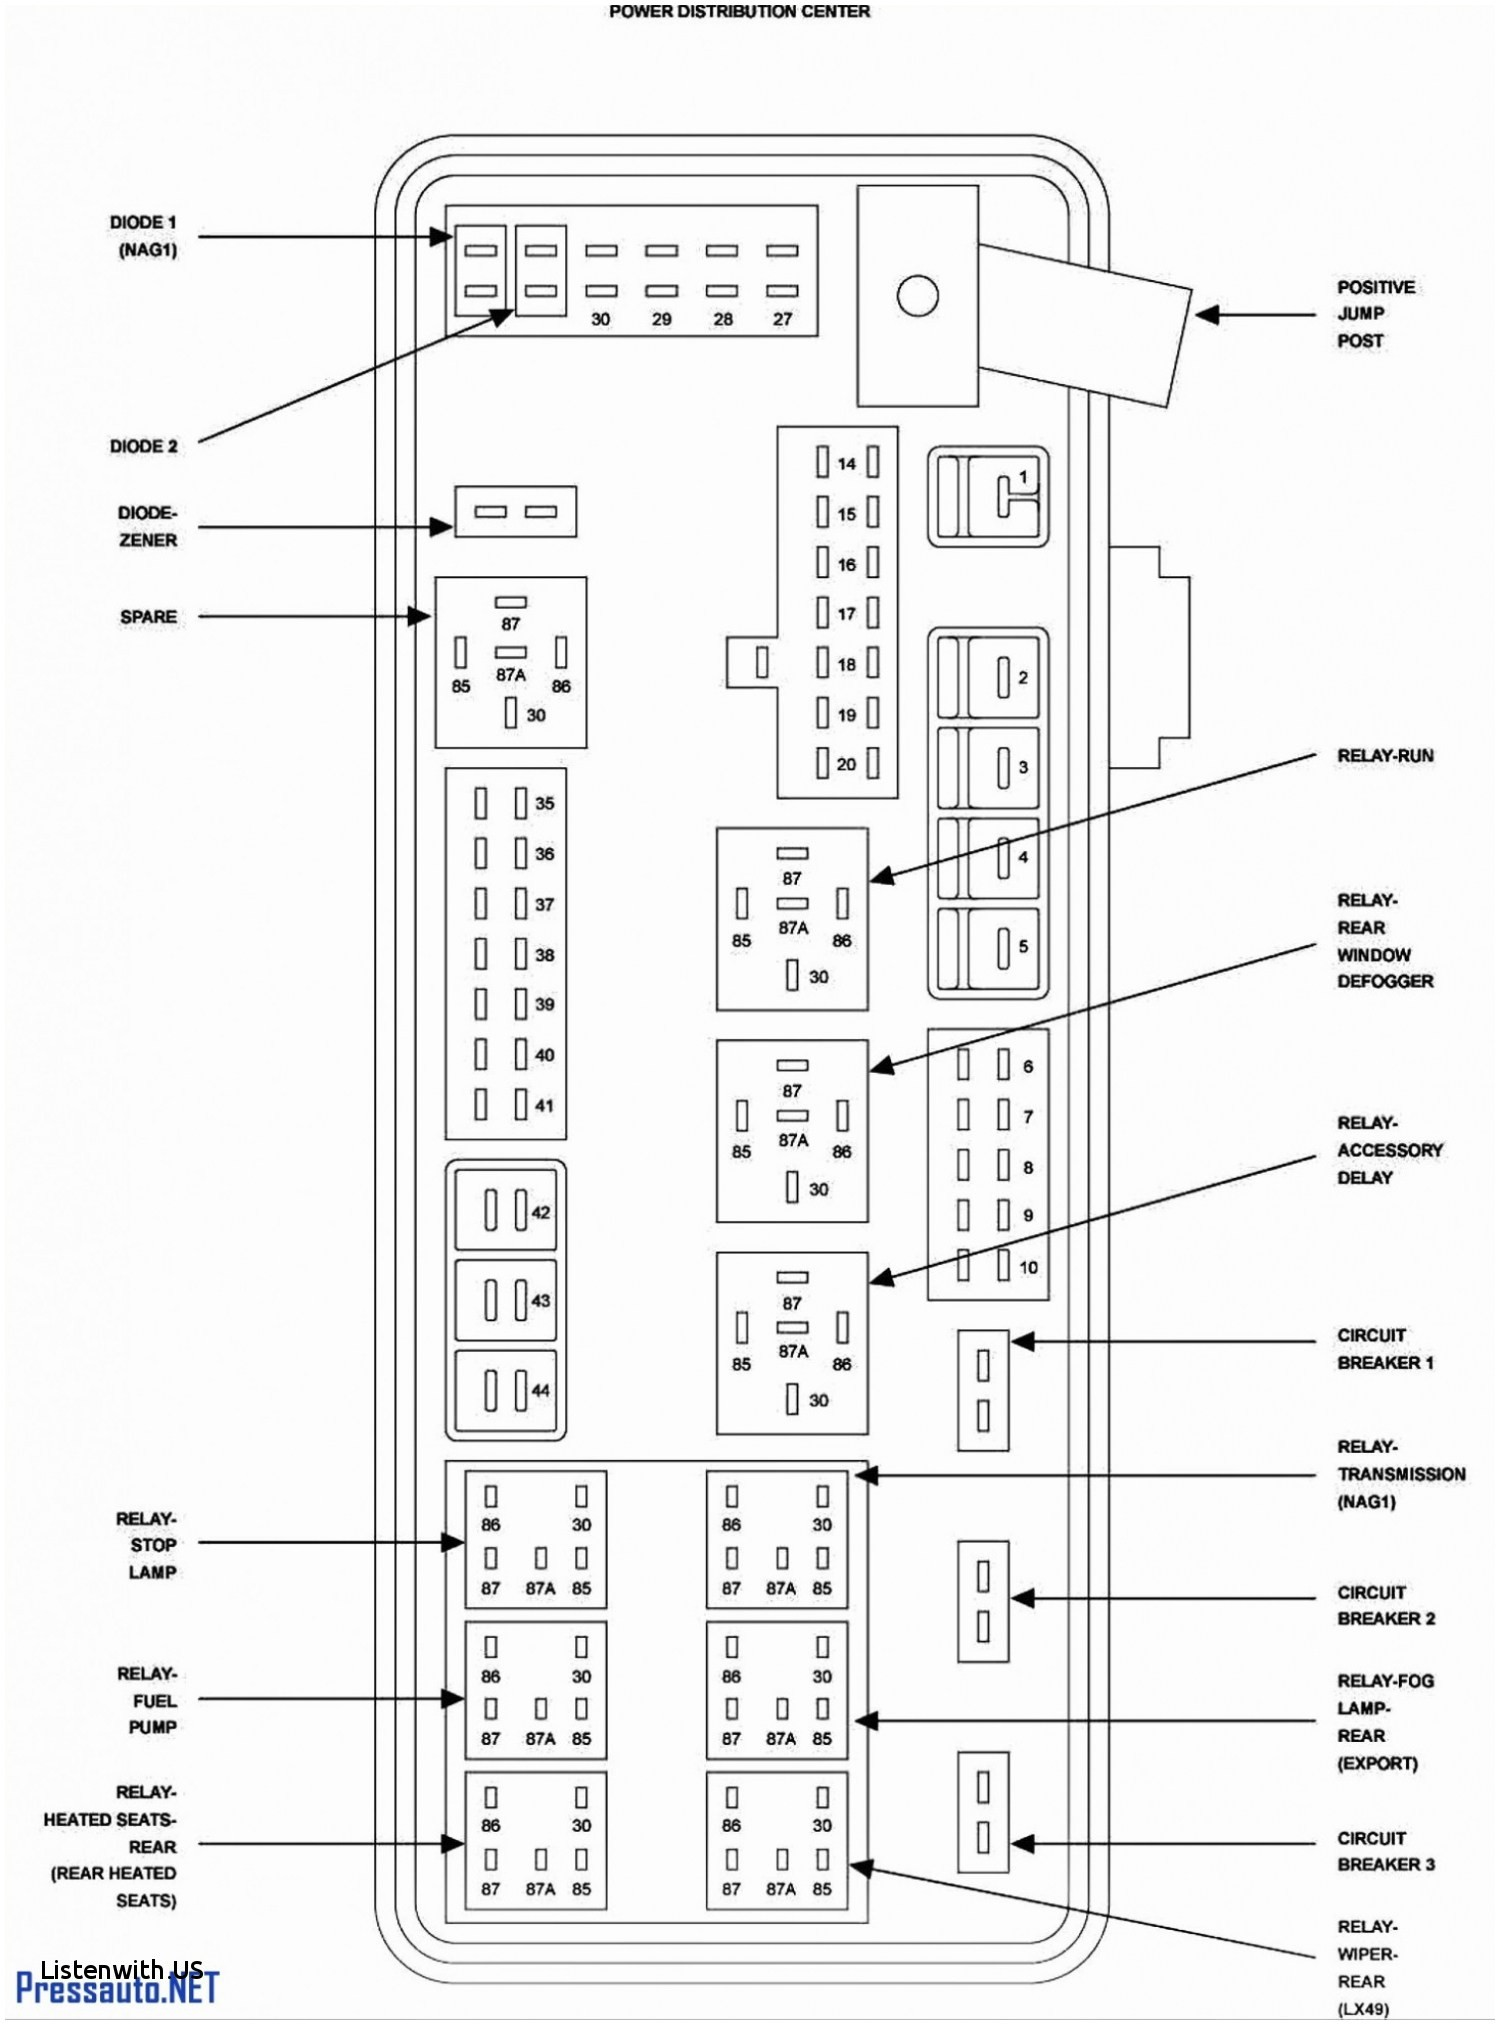 Factory Wiring Diagrams Car Audio Factory Car Stereo Diagrams Of Factory Wiring Diagrams Car Audio